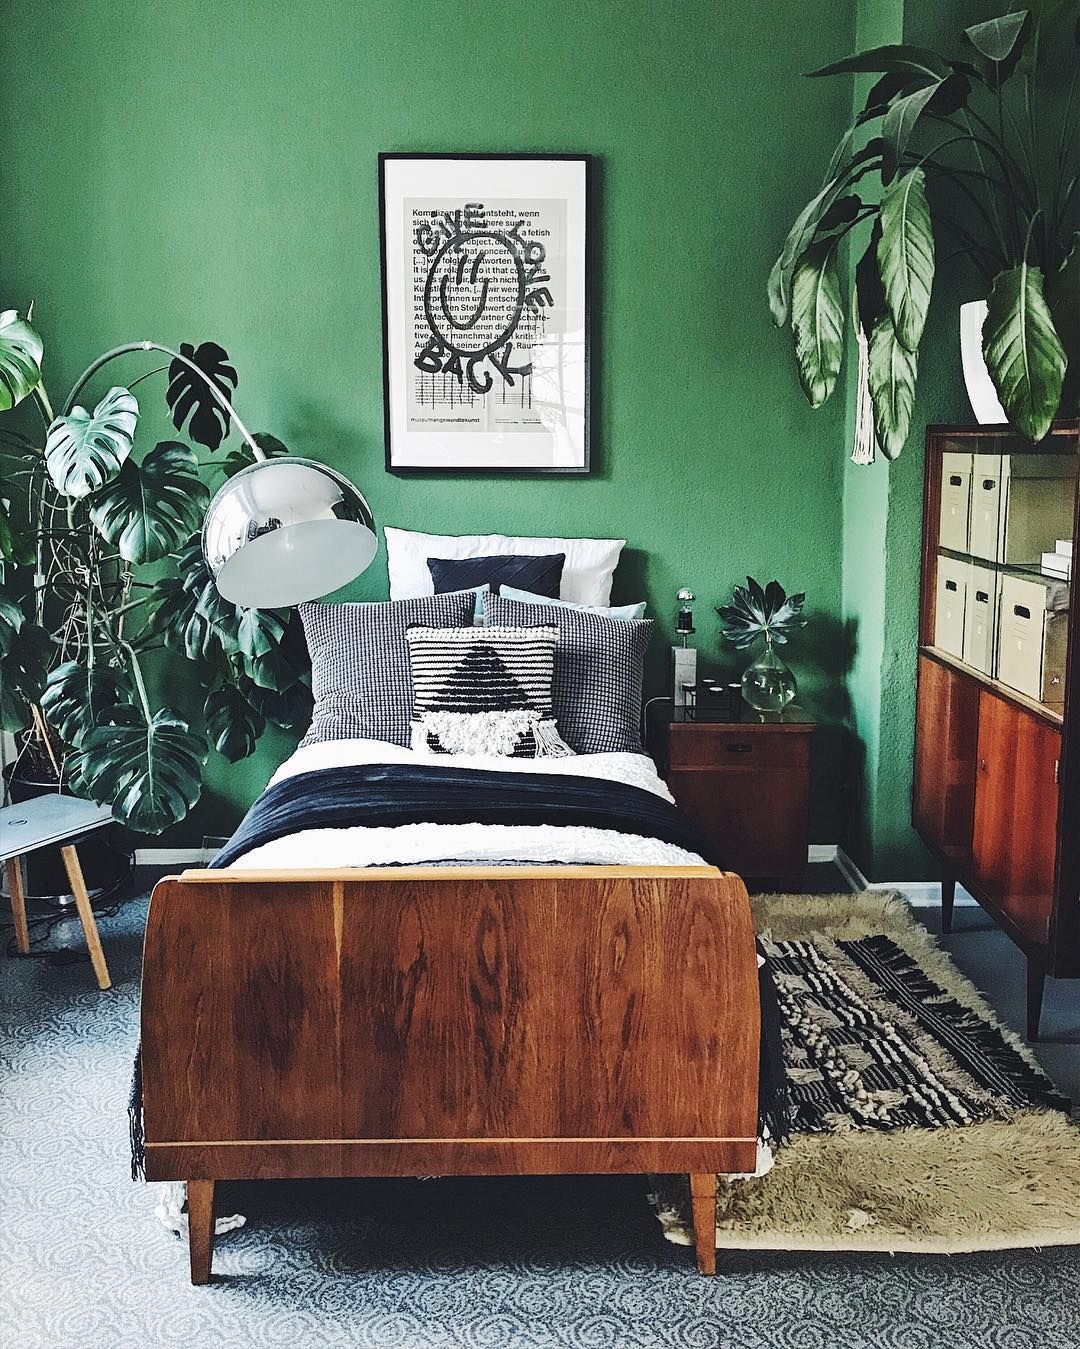 doitbutdoitnow gr nes zuhause schlafzimmer im urban jungle look mit vintage m beln gr ner. Black Bedroom Furniture Sets. Home Design Ideas